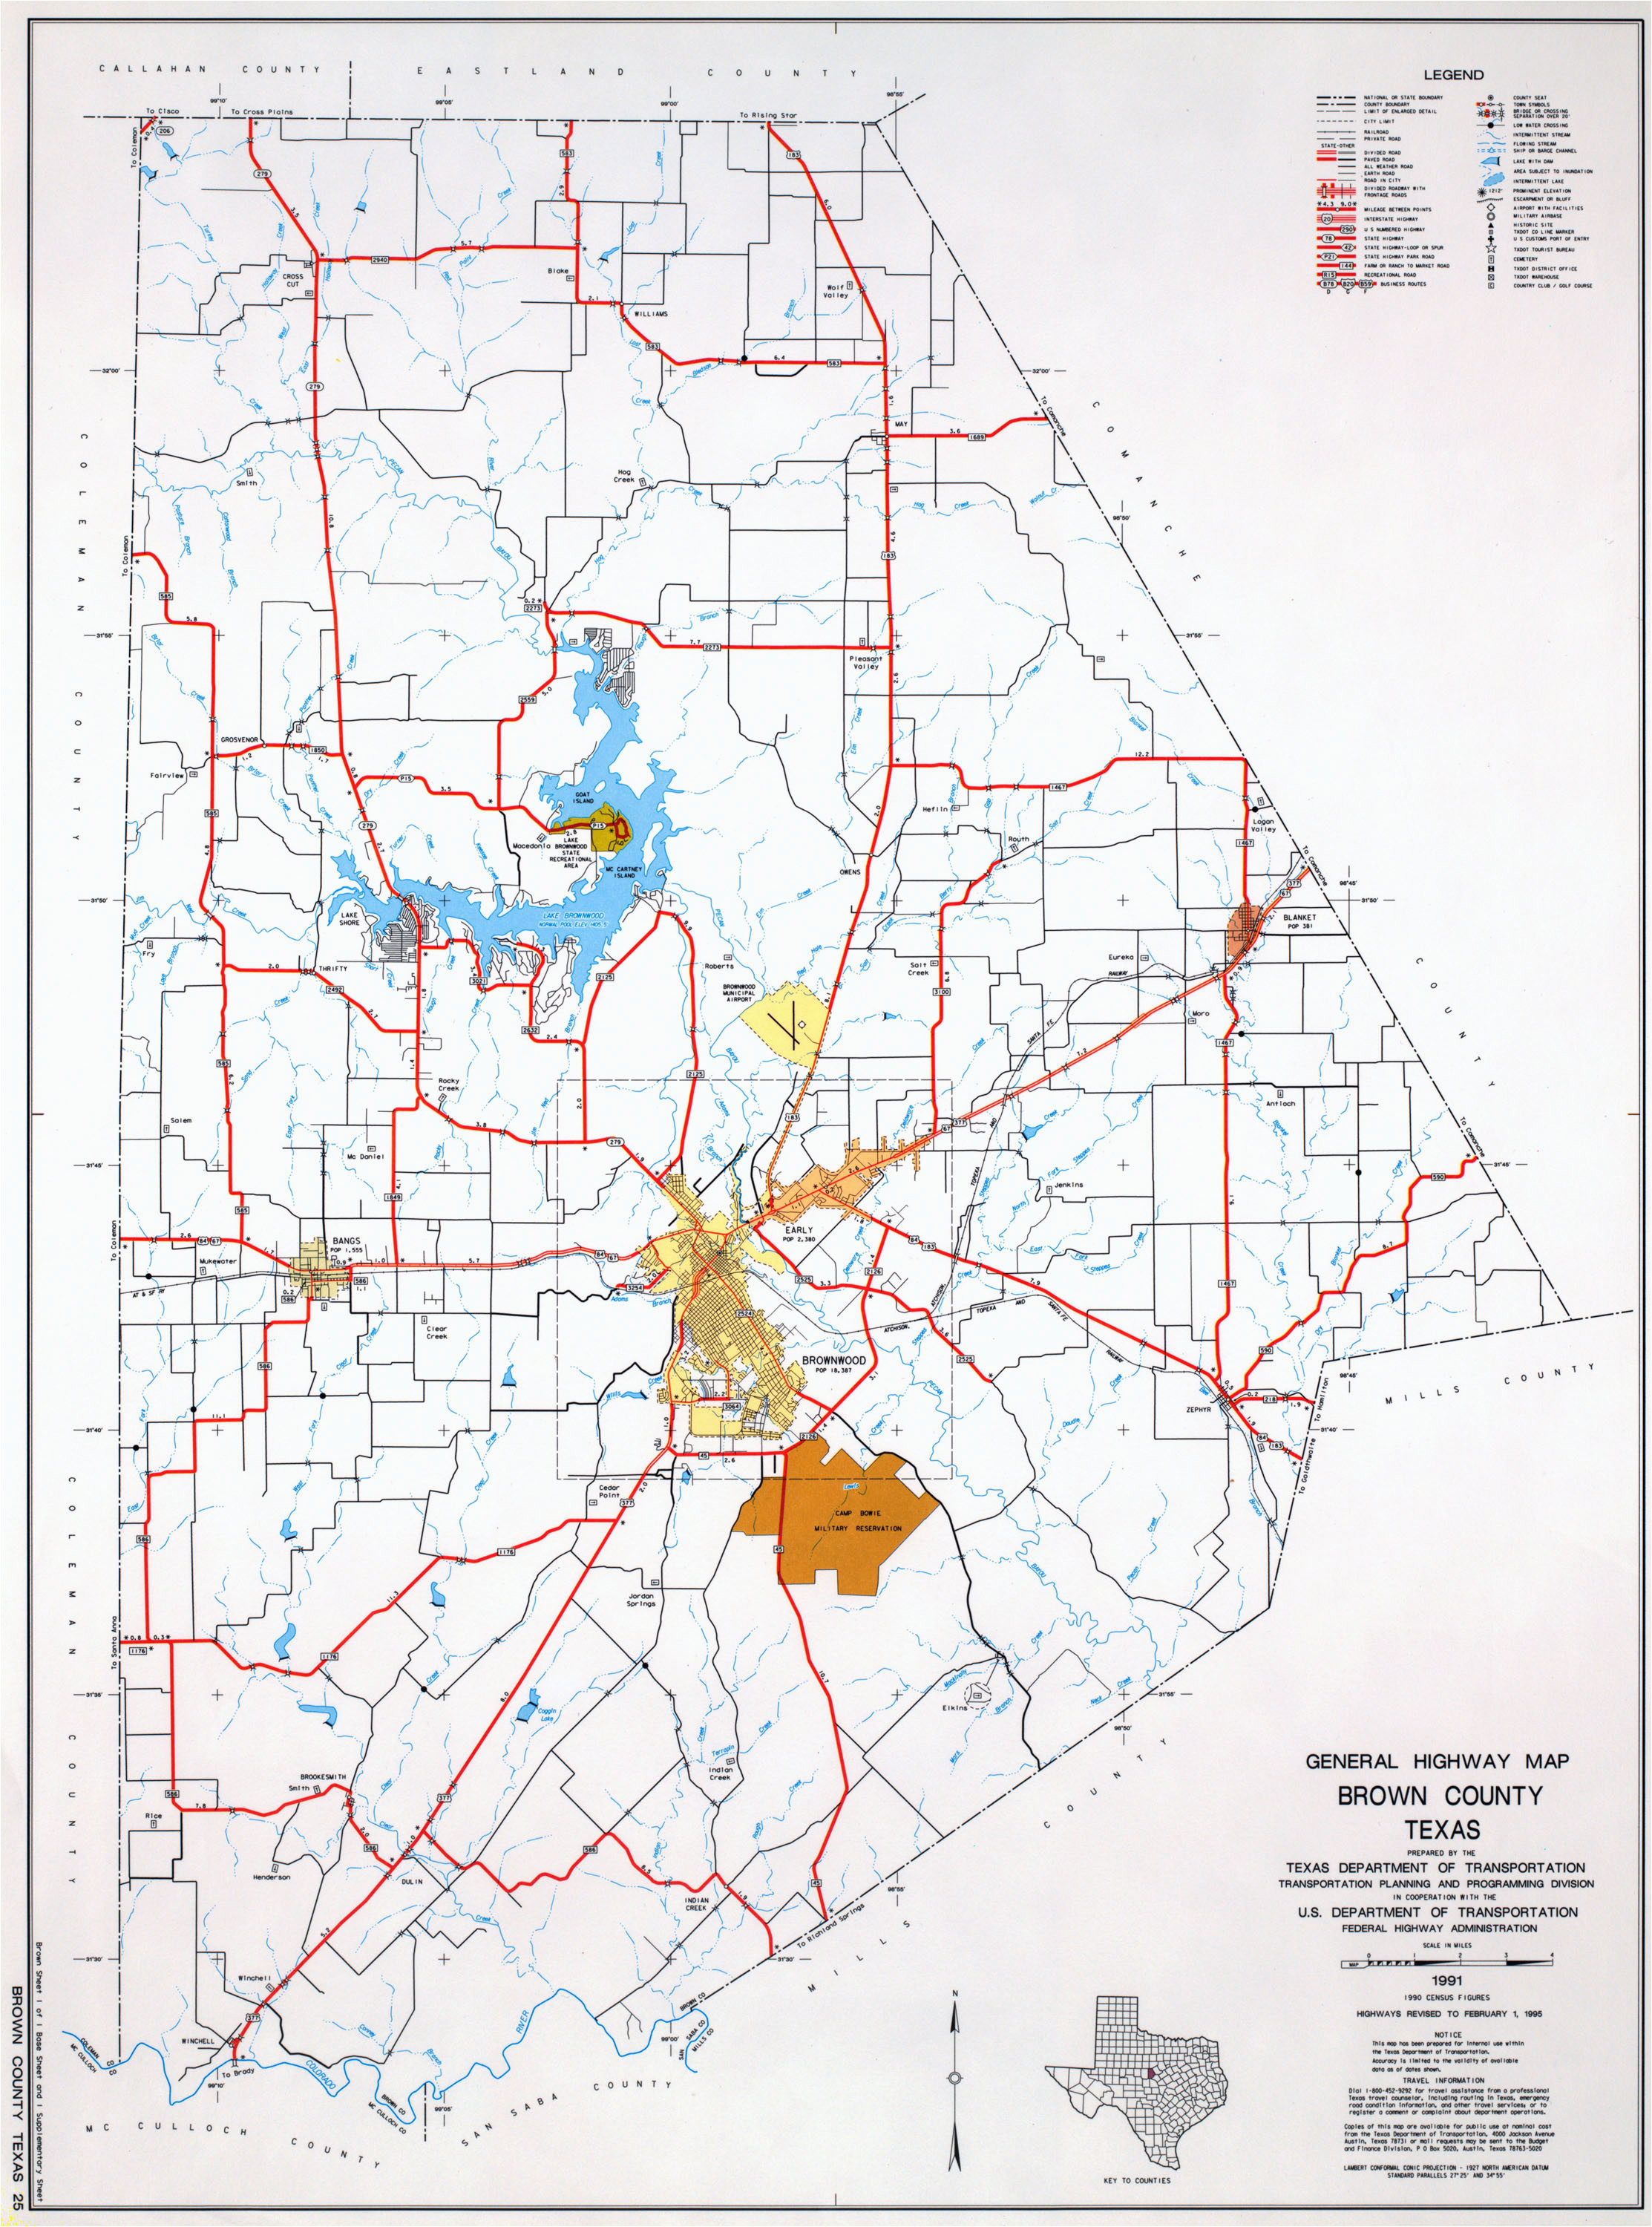 State Of Texas Counties Map.Texas State Map With Counties Texas County Highway Maps Browse Perry